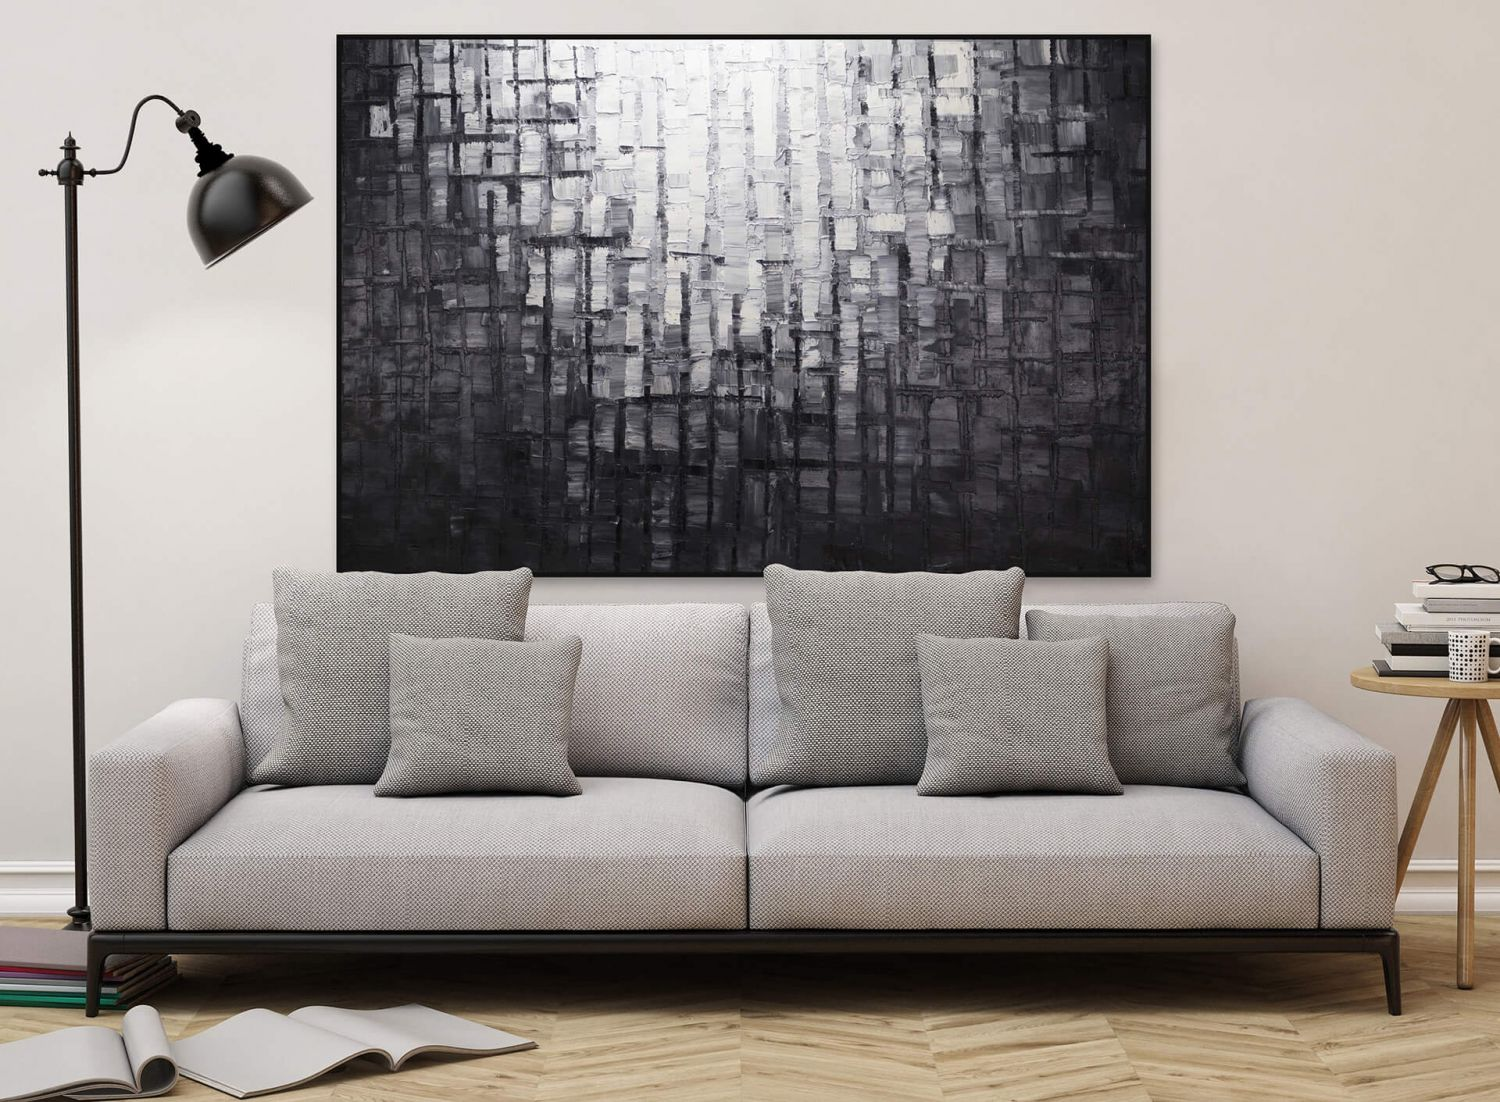 l gem lde 39 abstrakt schwarz xxl 39 handgemalt leinwand bilder 180x120cm ebay. Black Bedroom Furniture Sets. Home Design Ideas